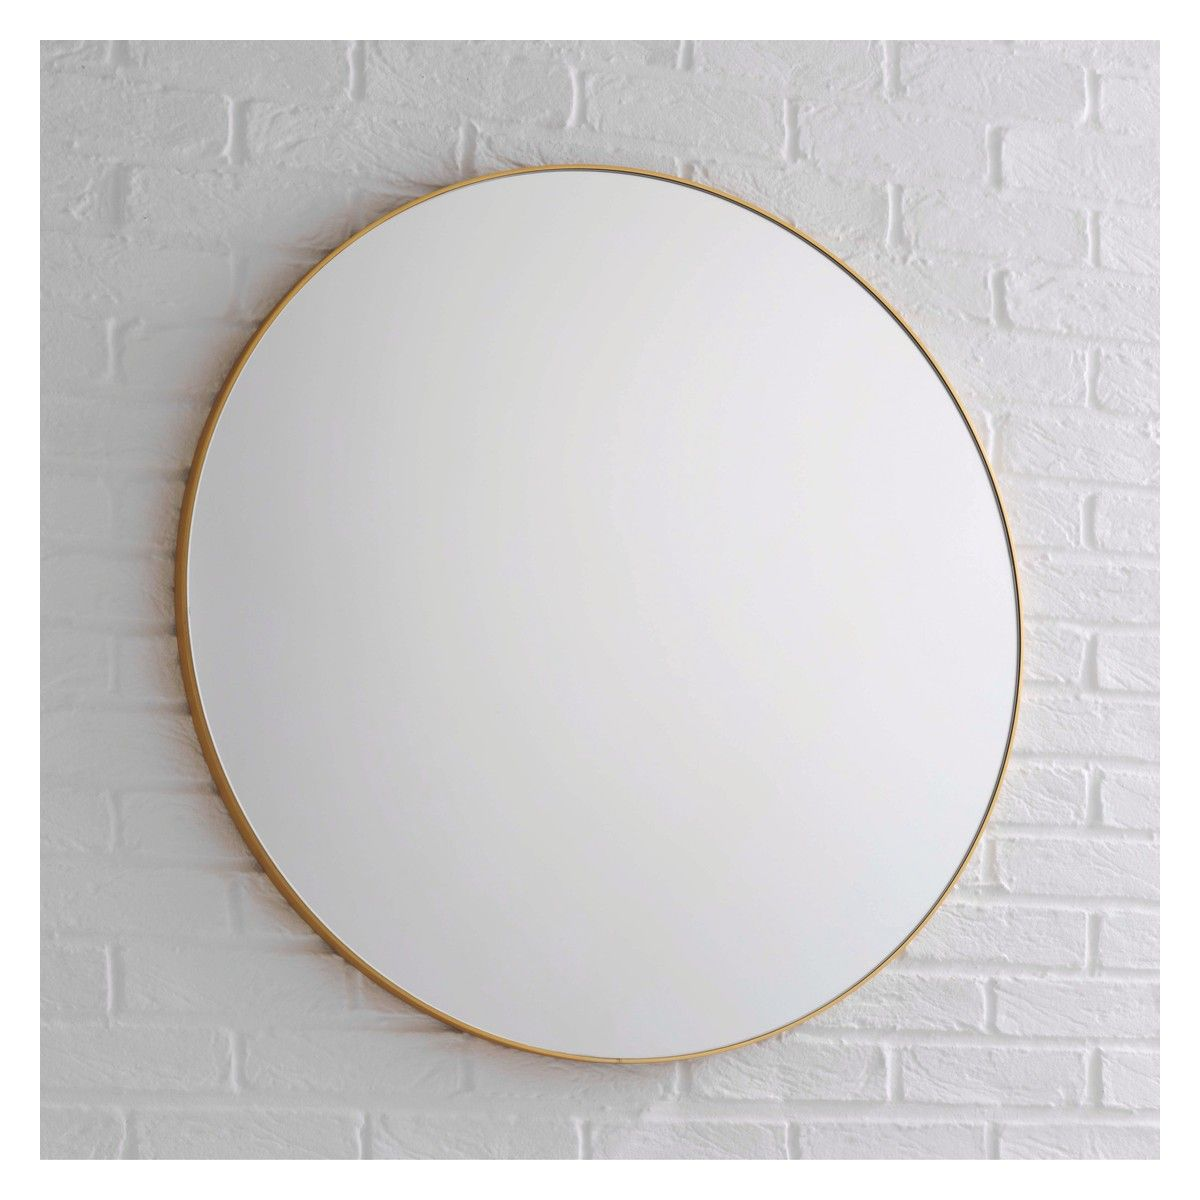 Patsy D82cm Large Round Gold Wall Mirror Gold Mirror Wall Mirror Wall Mirror Wall Living Room